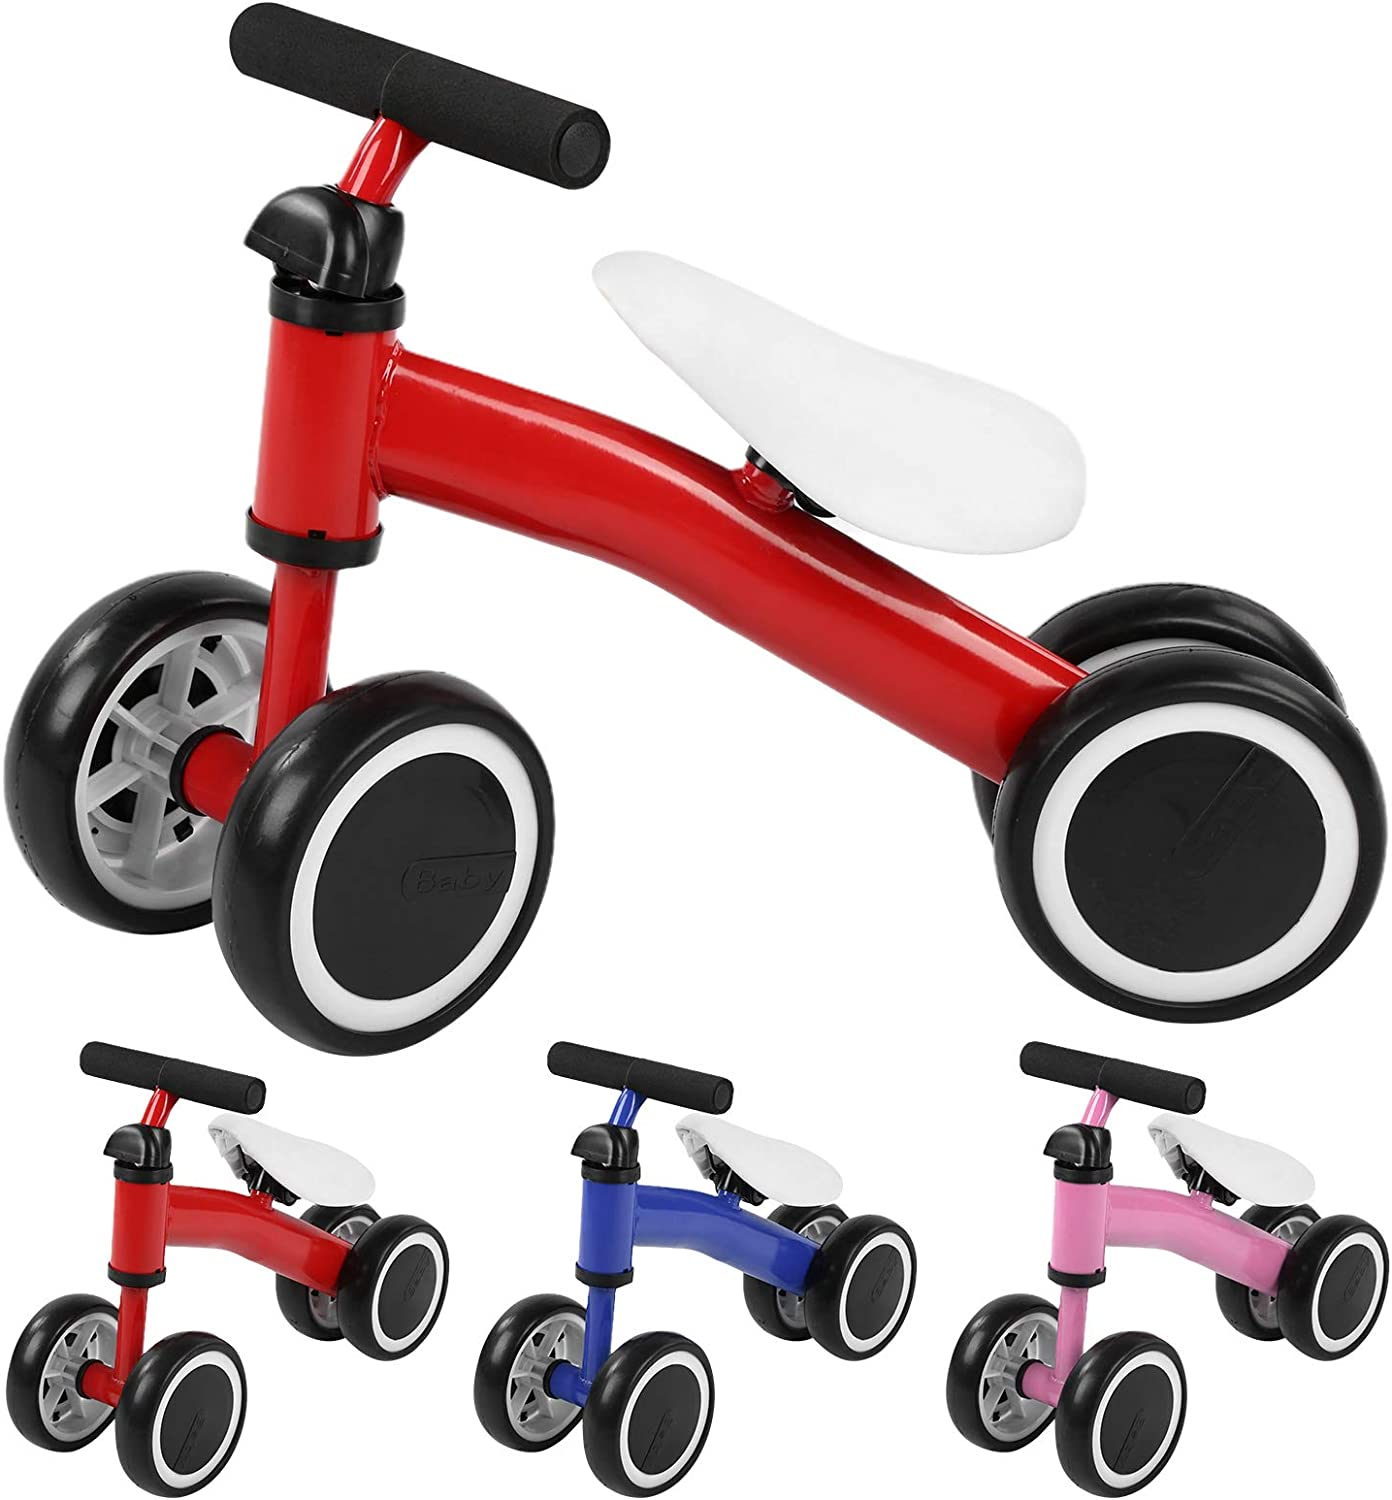 T-Day Baby Balance Scooter, Baby Infant Balance Scooter Walker Baby Toddler Aprende a Caminar Sin Pedales Juguetes para Montar(Azul)